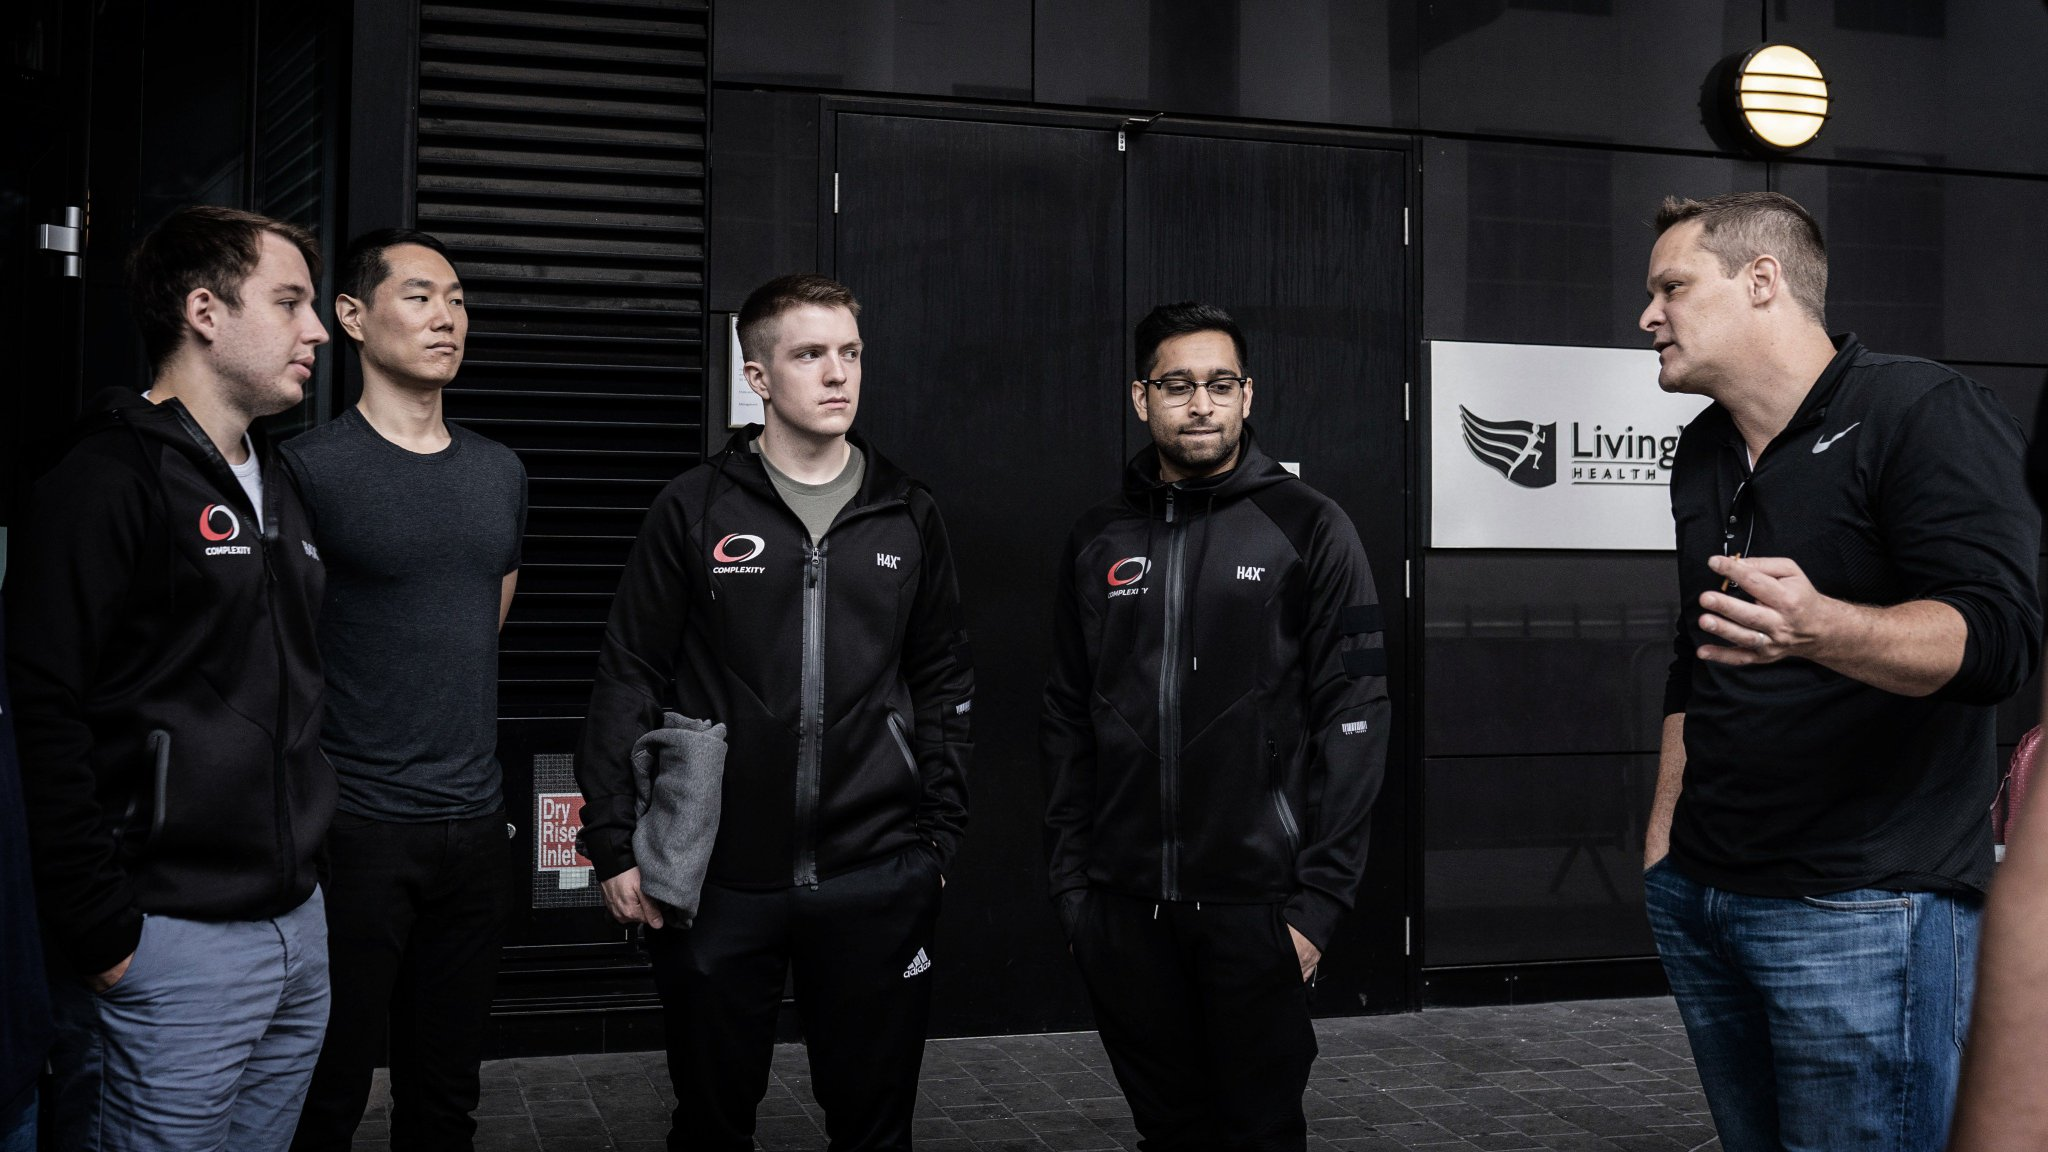 Wishing our friends at @compLexity the best of luck today in the #FACEITMajor! https://t.co/bMmoCPJNQ1